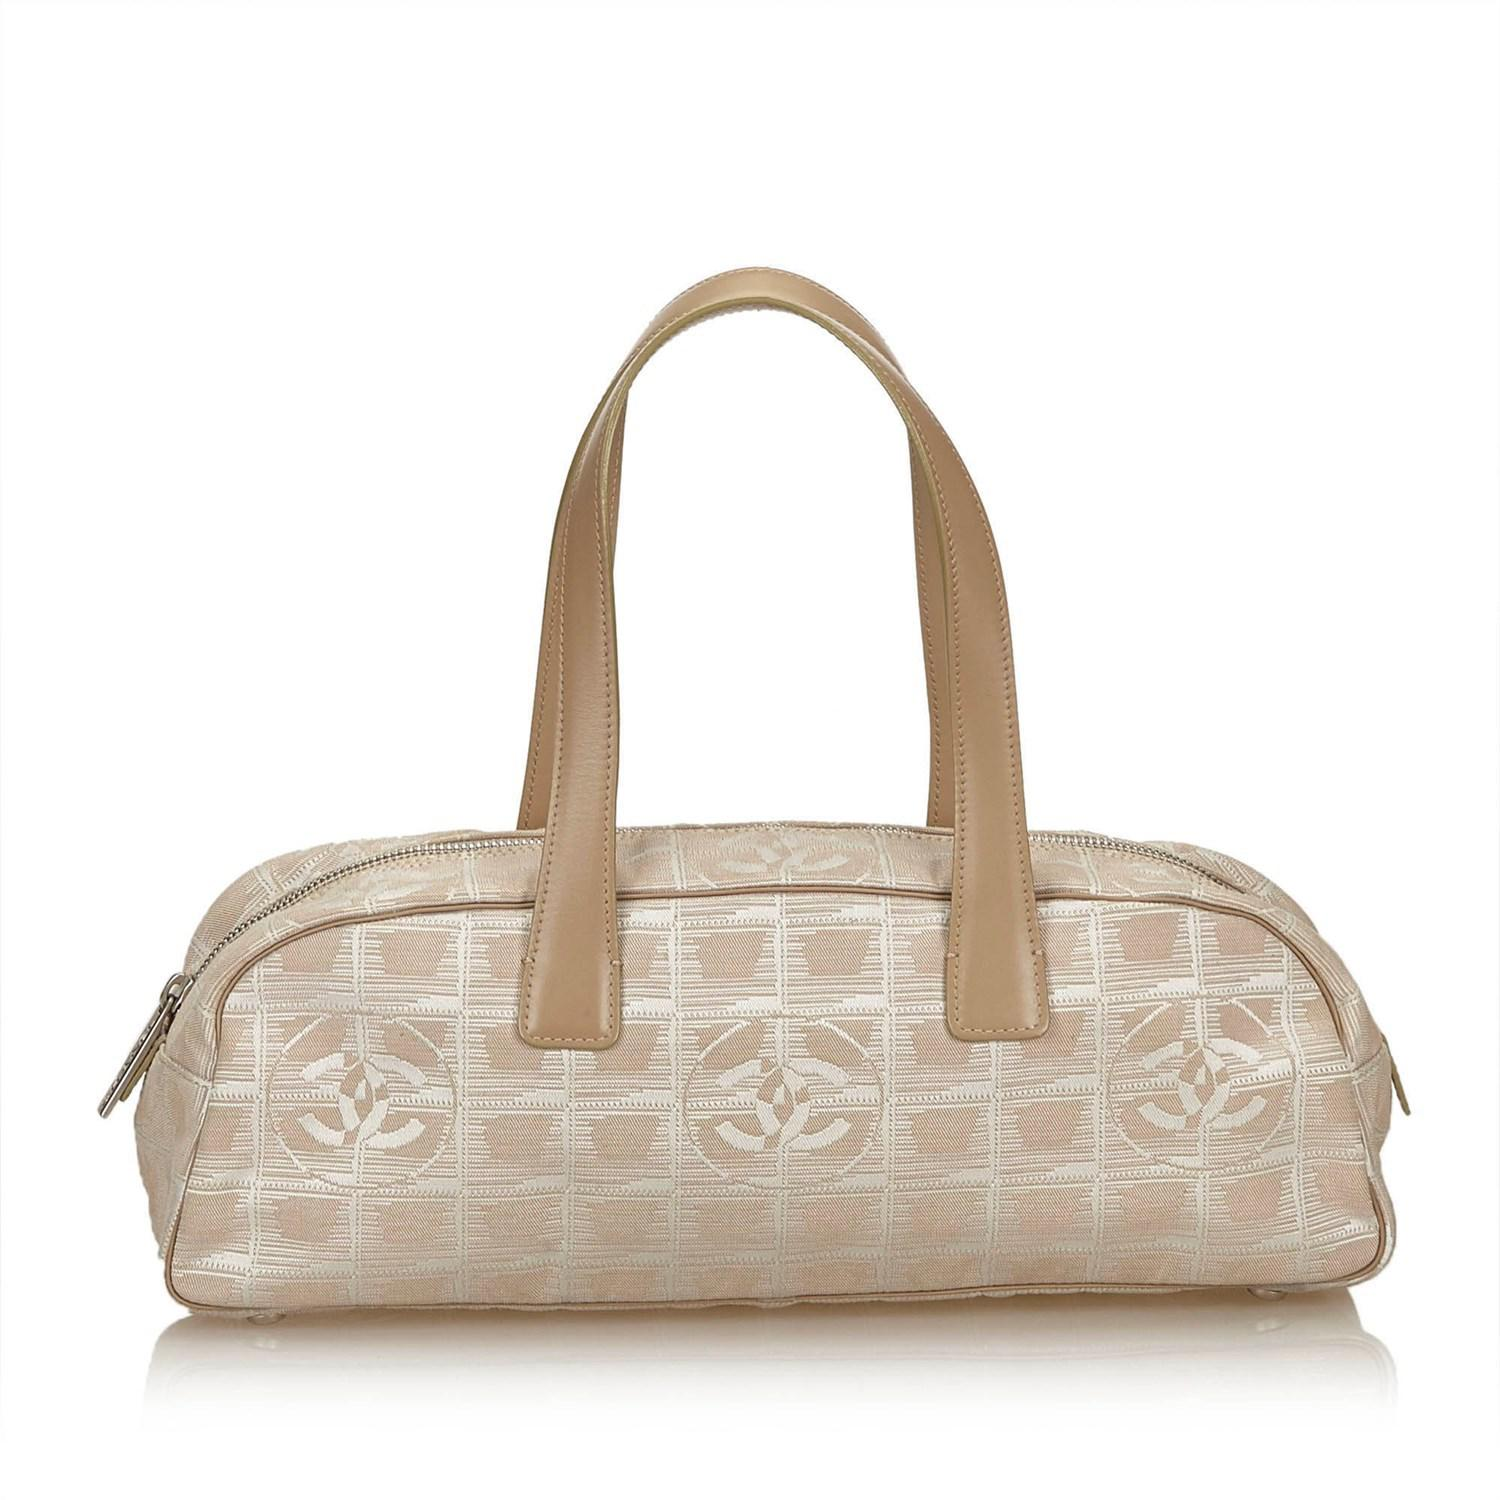 5912b0ff5535 Chanel New Travel Line Bowler Bag in Natural - Lyst